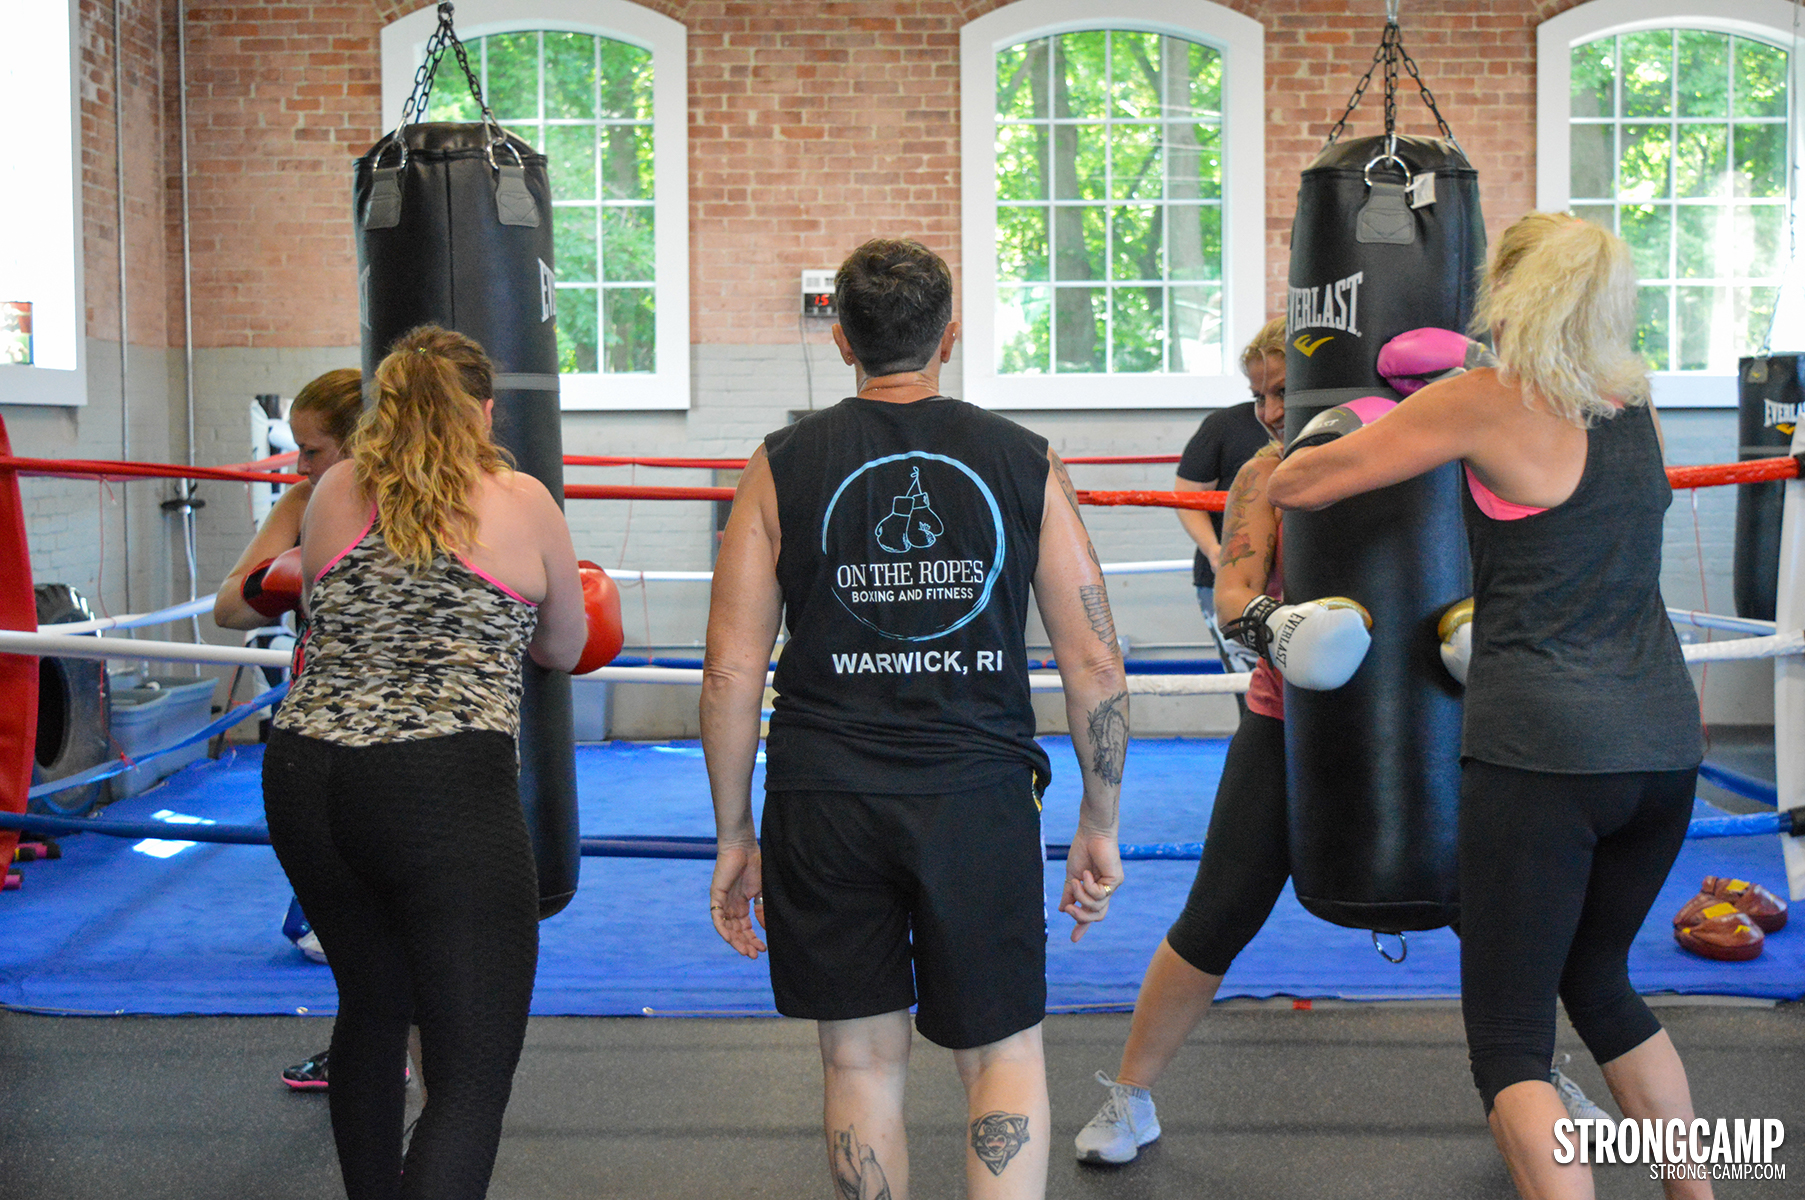 STRONGCAMP boxing at on the ropes